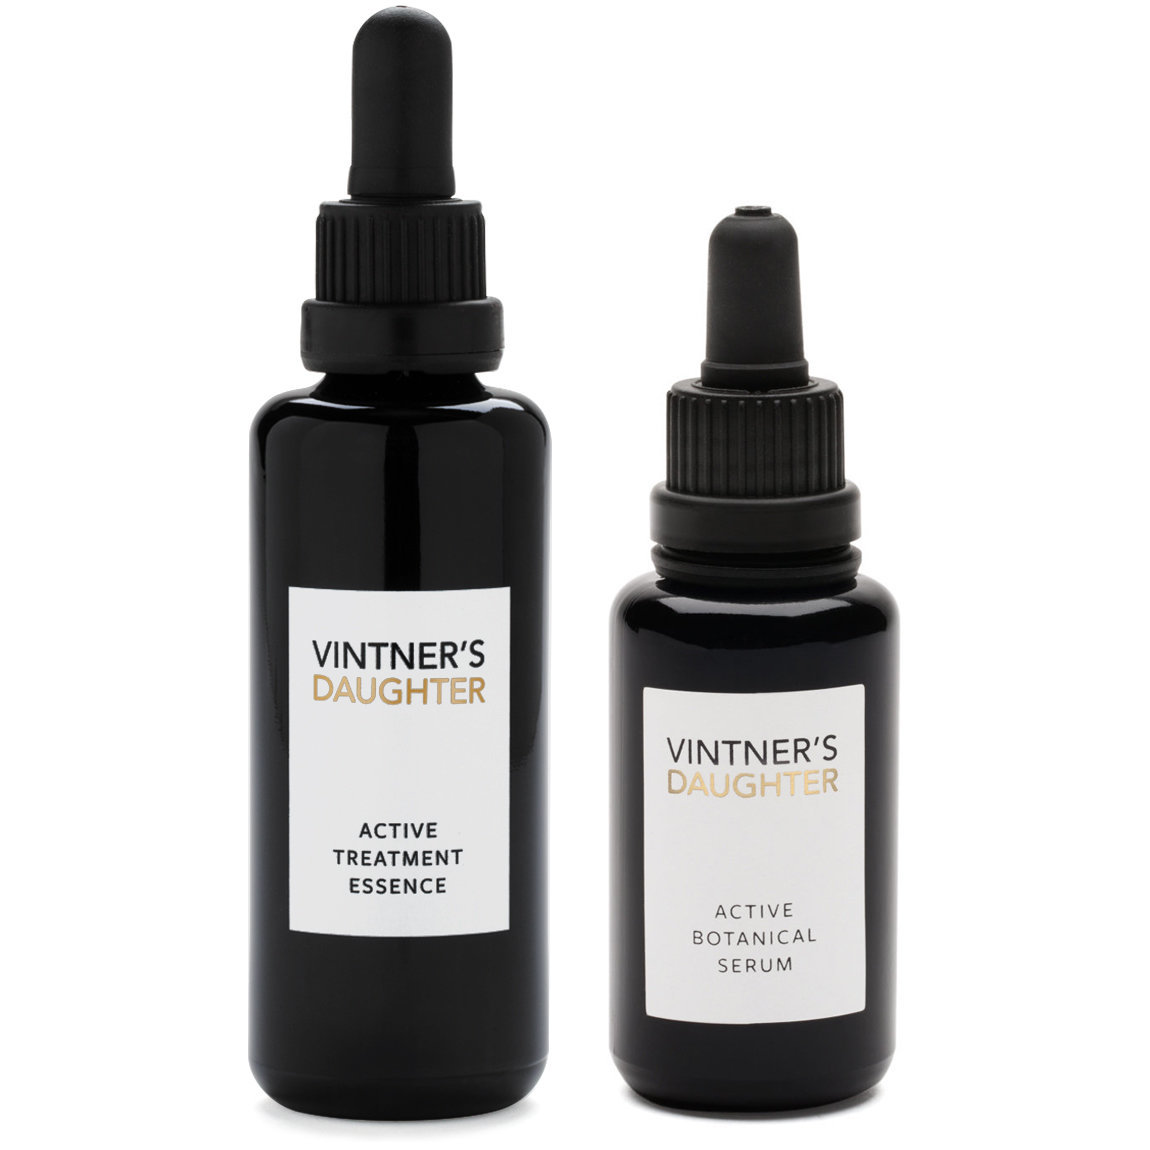 Vintner's Daughter Active Botancial Serum and Treatment Essence Bundle product swatch.